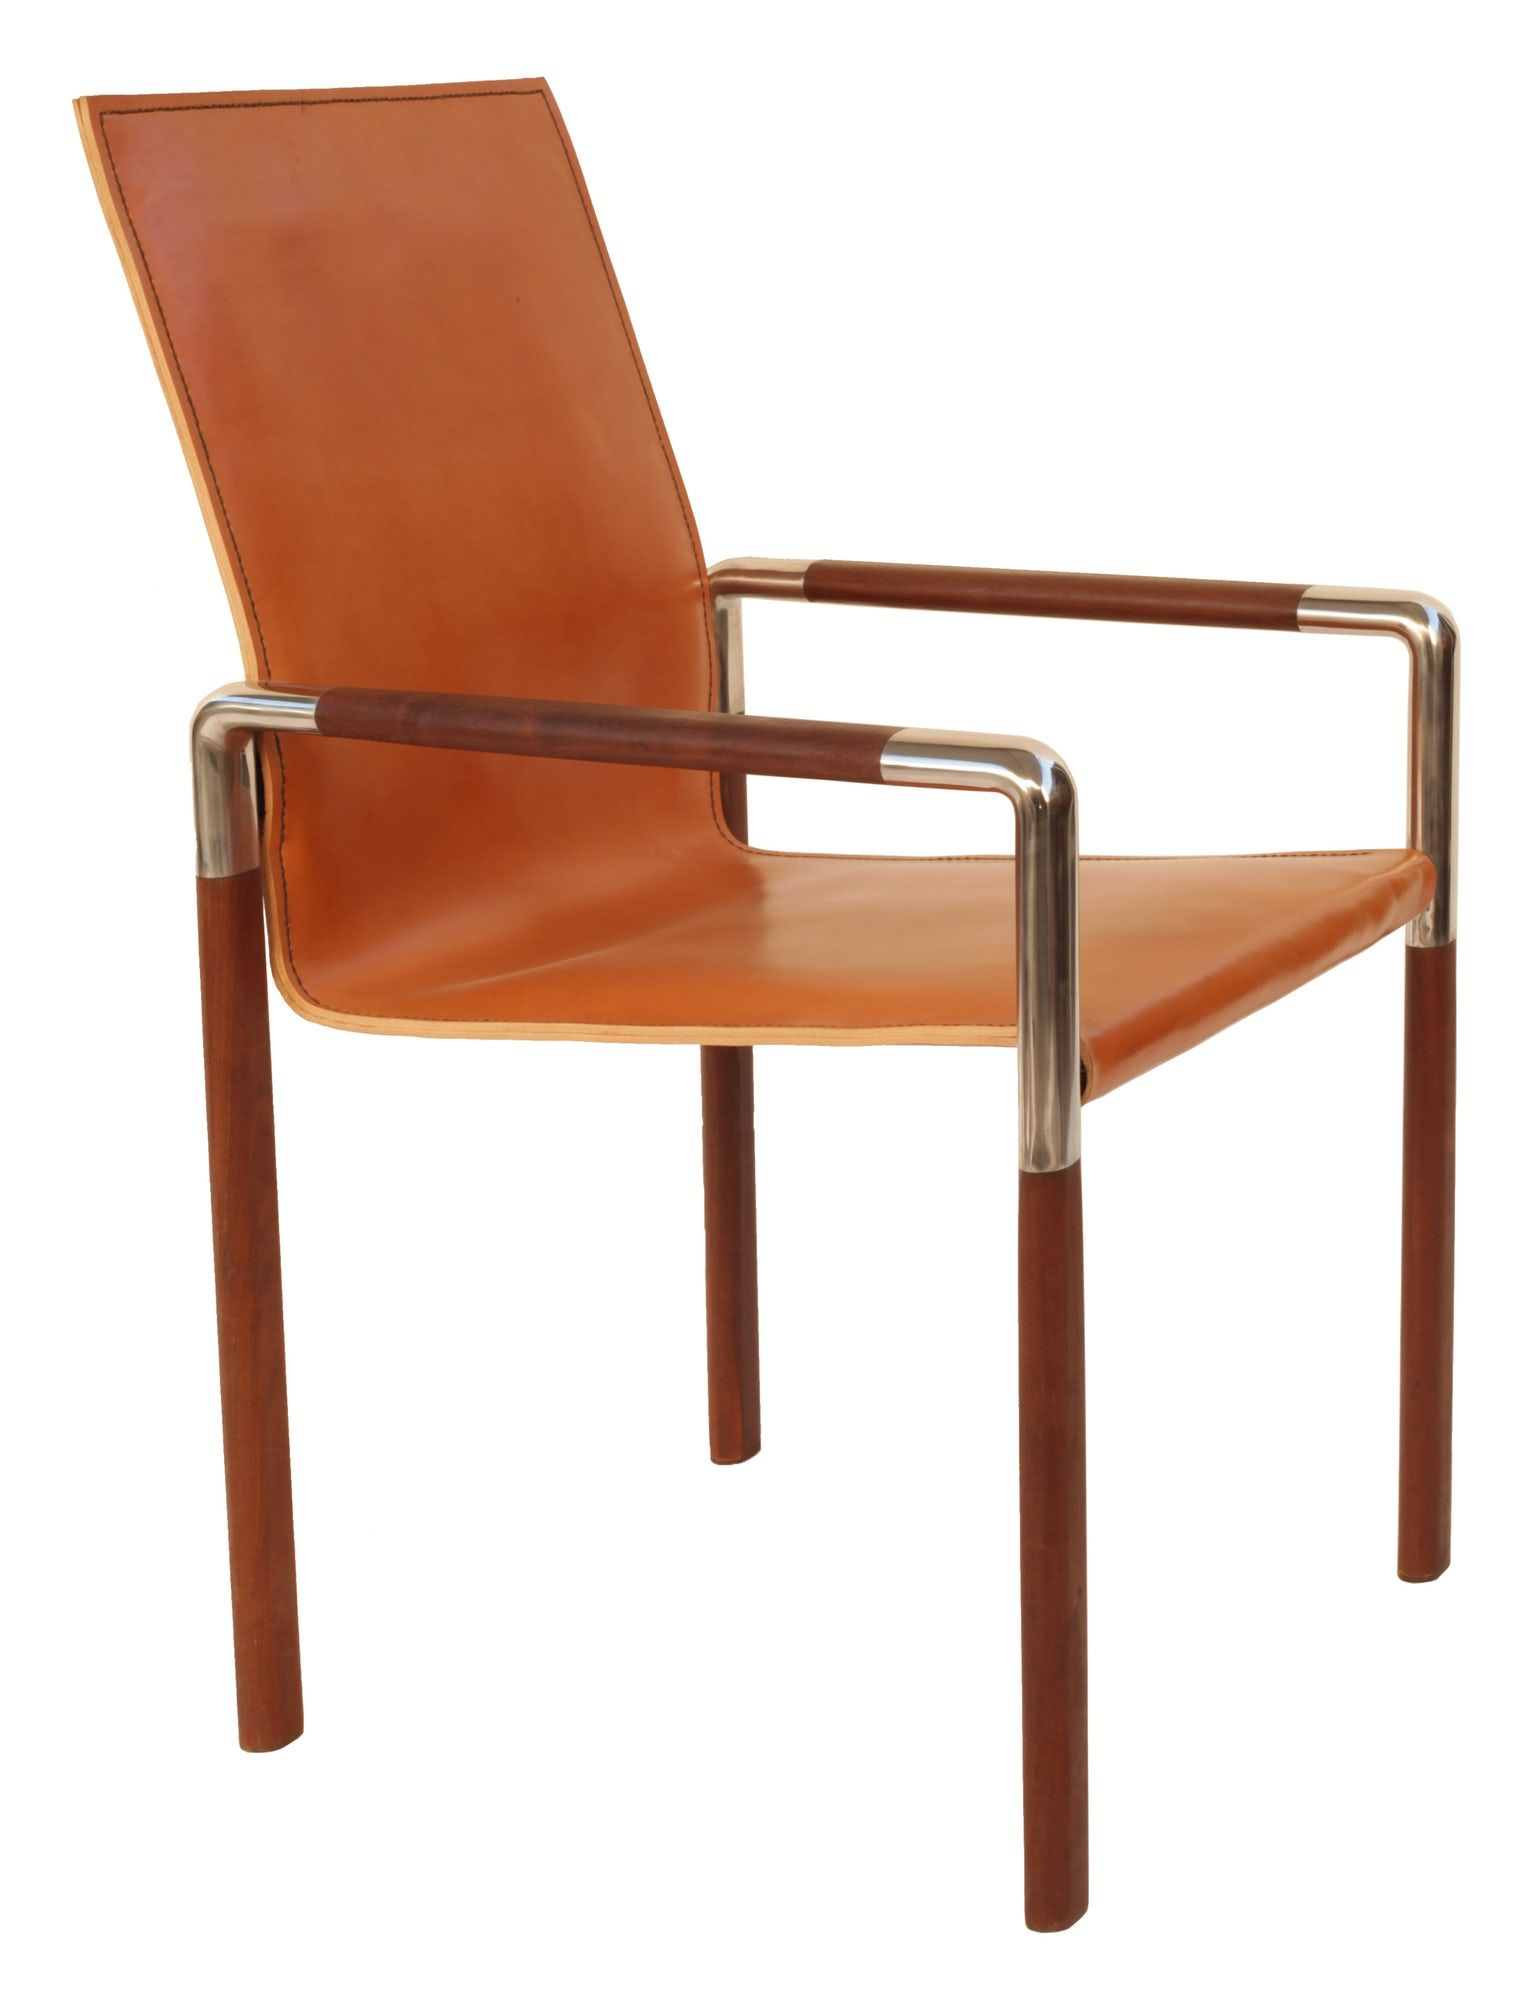 Zele Riva Leather Dining Chair Contemporary Midcentury Modern